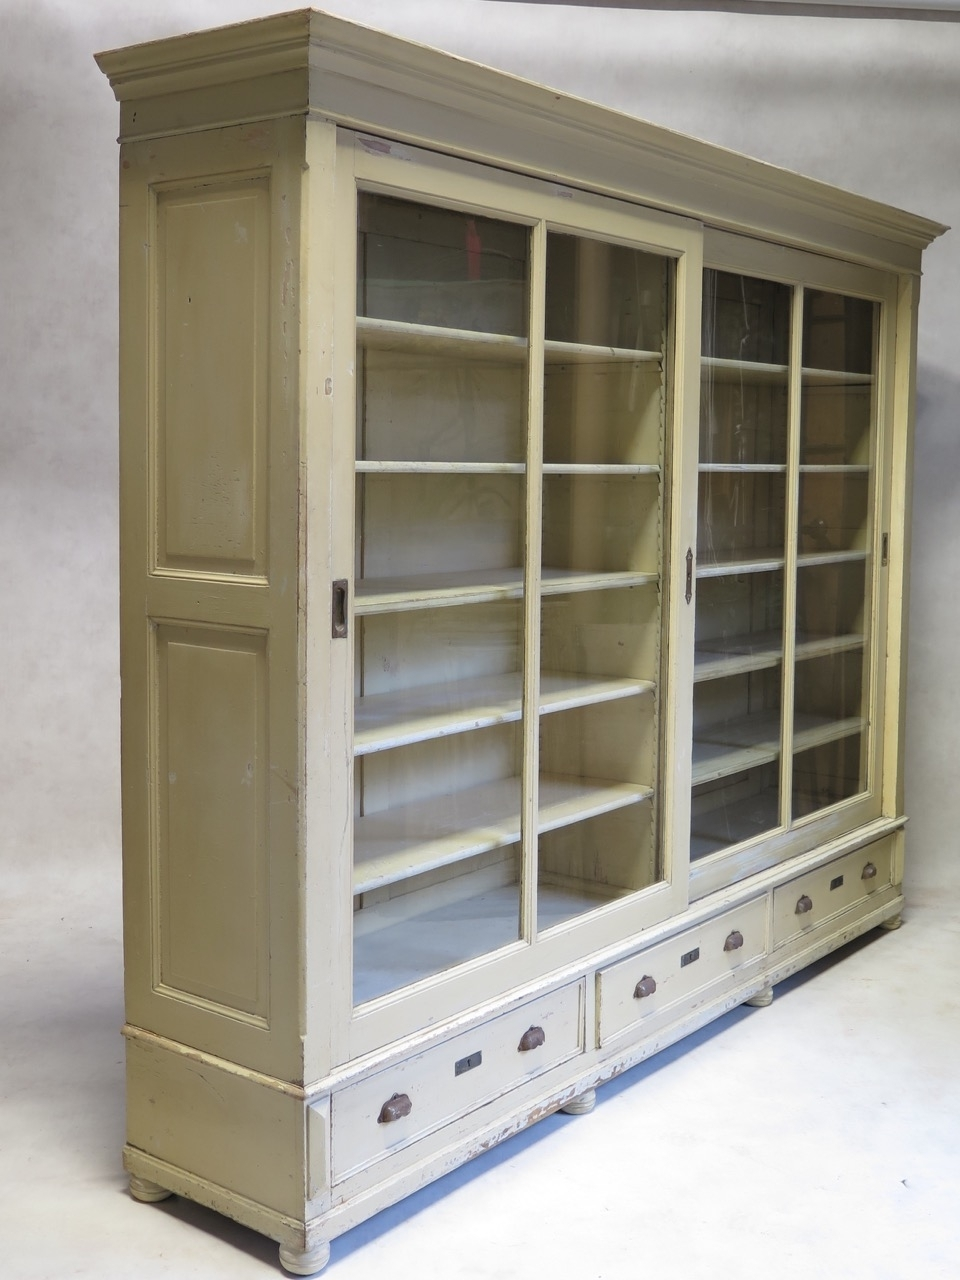 Latest Elegant Bookcase With Sliding Glass Doors, France, Early 20th Inside Bookcases With Sliding Glass Doors (View 9 of 15)